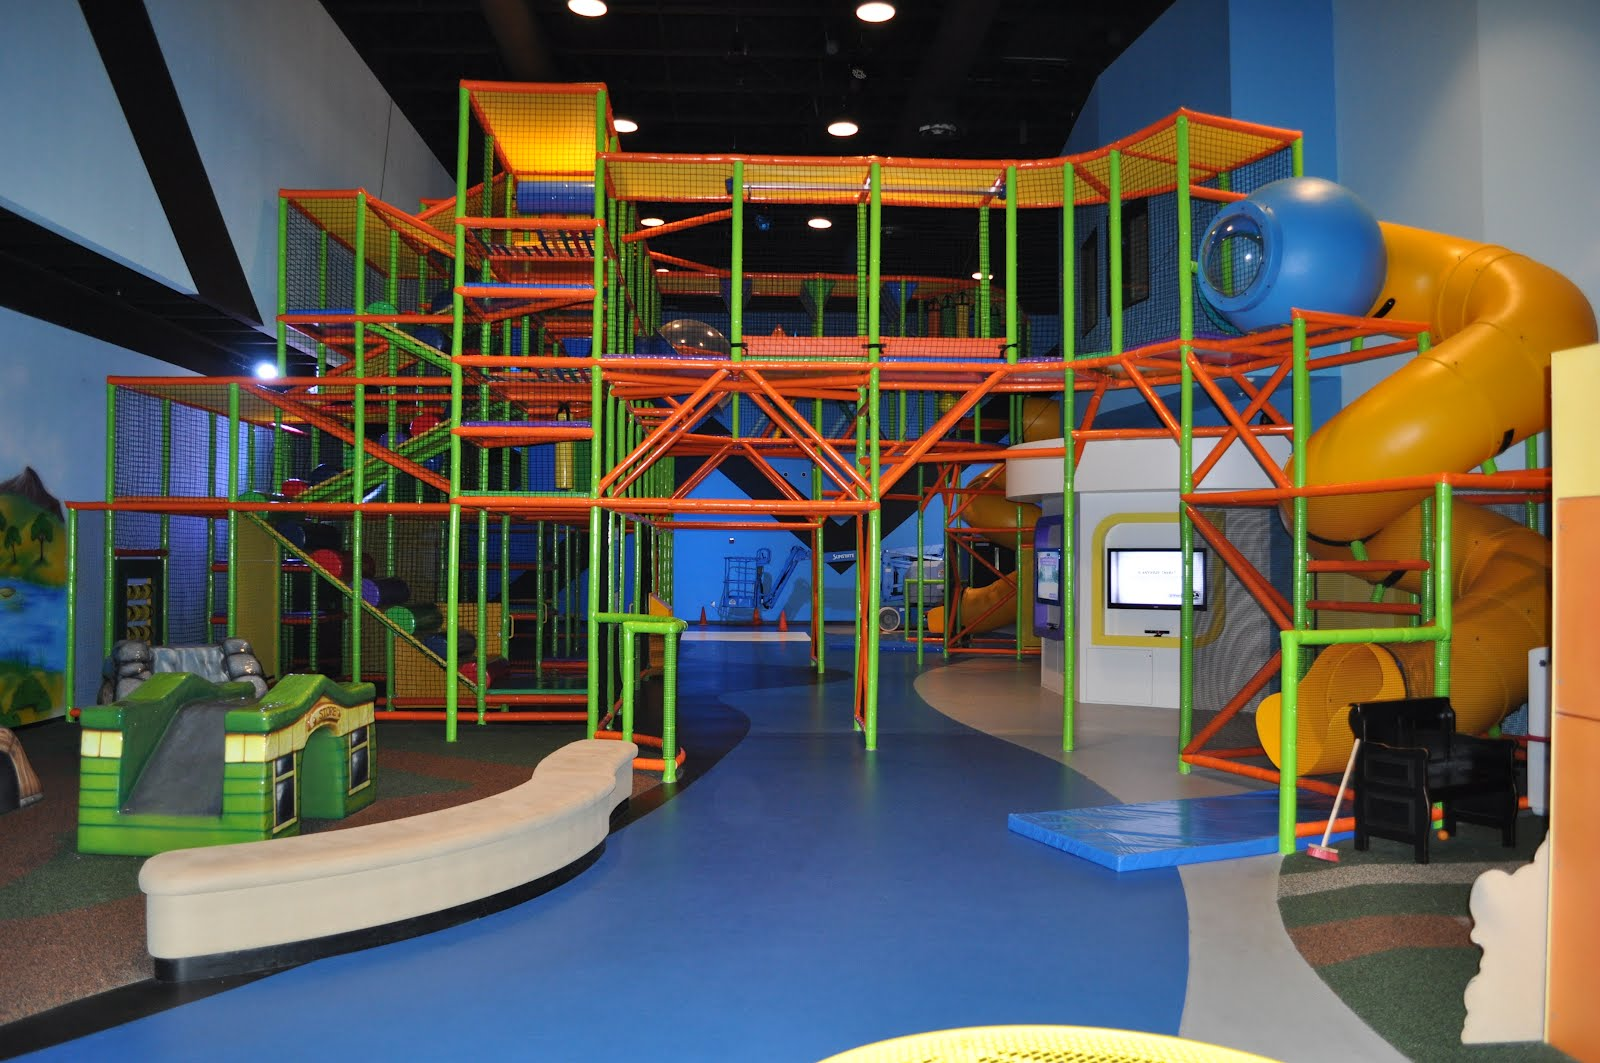 Covenant church indoor playground worlds of wow blog for Indoor playground design ideas